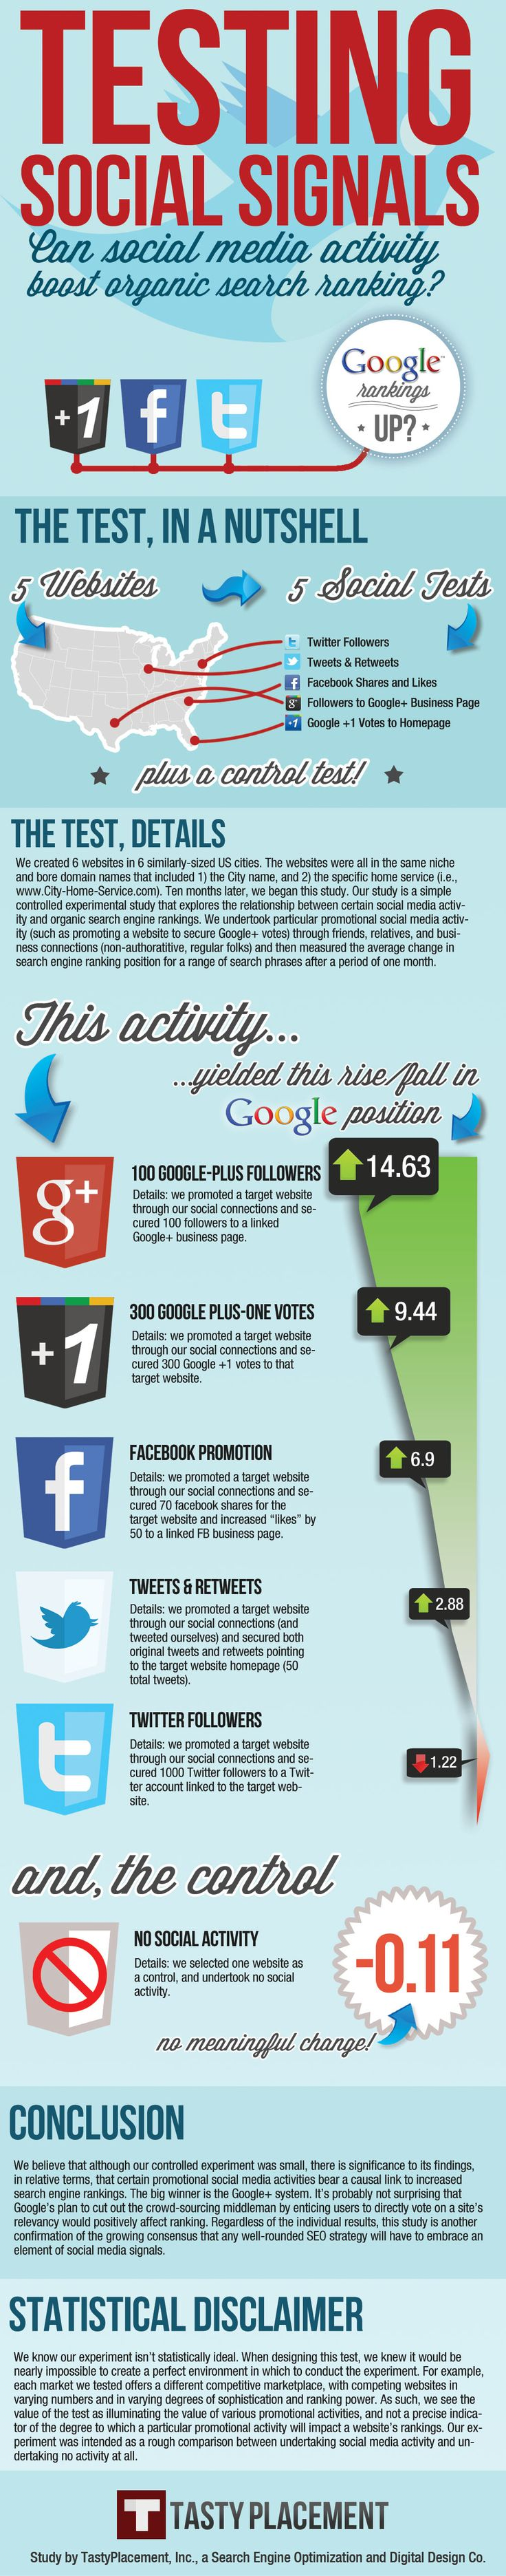 How-does-social-media-affect-search-ranking-pamorama.